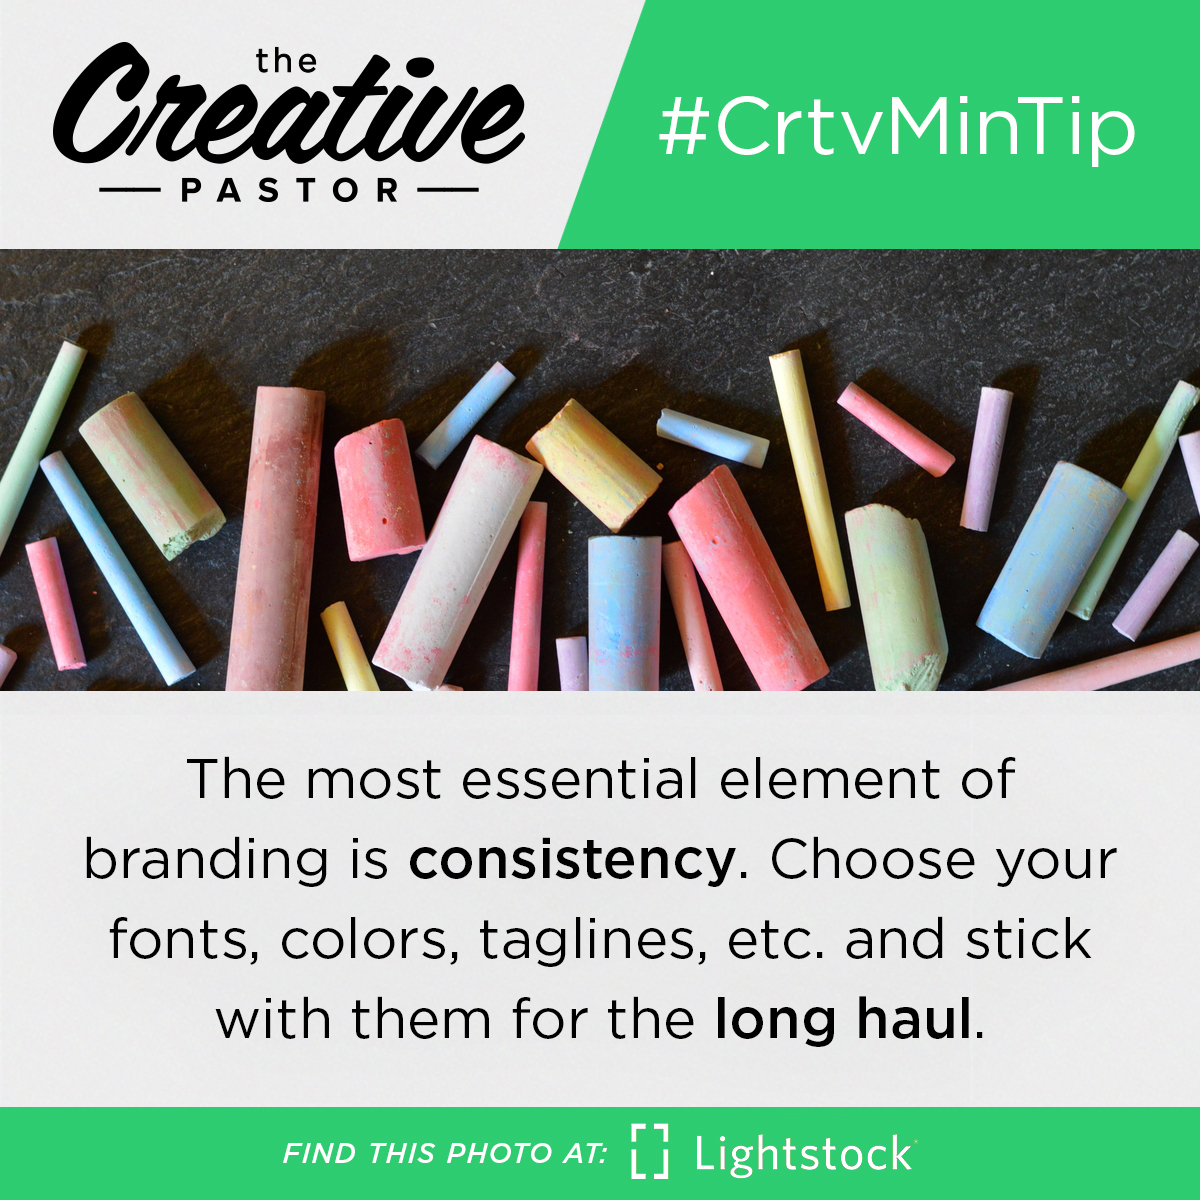 The most essential element of branding is consistency. Choose your fonts, colors, taglines, etc. and stick with them for the long haul.